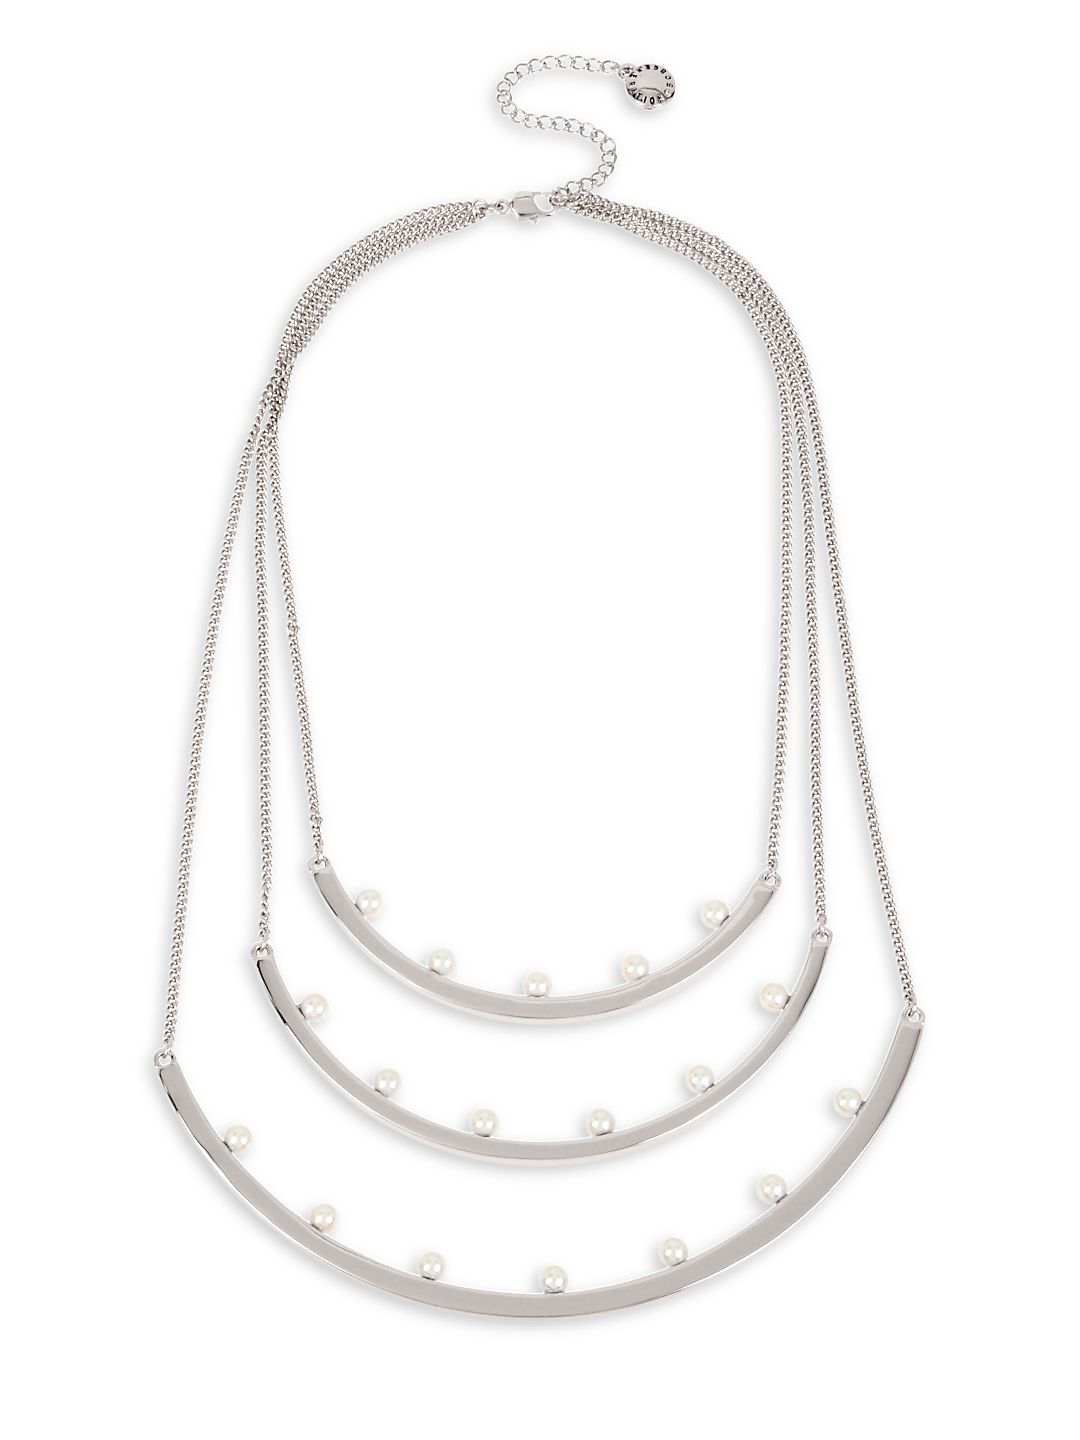 Silvertone Multi-Row Curved Bar Frontal Necklace